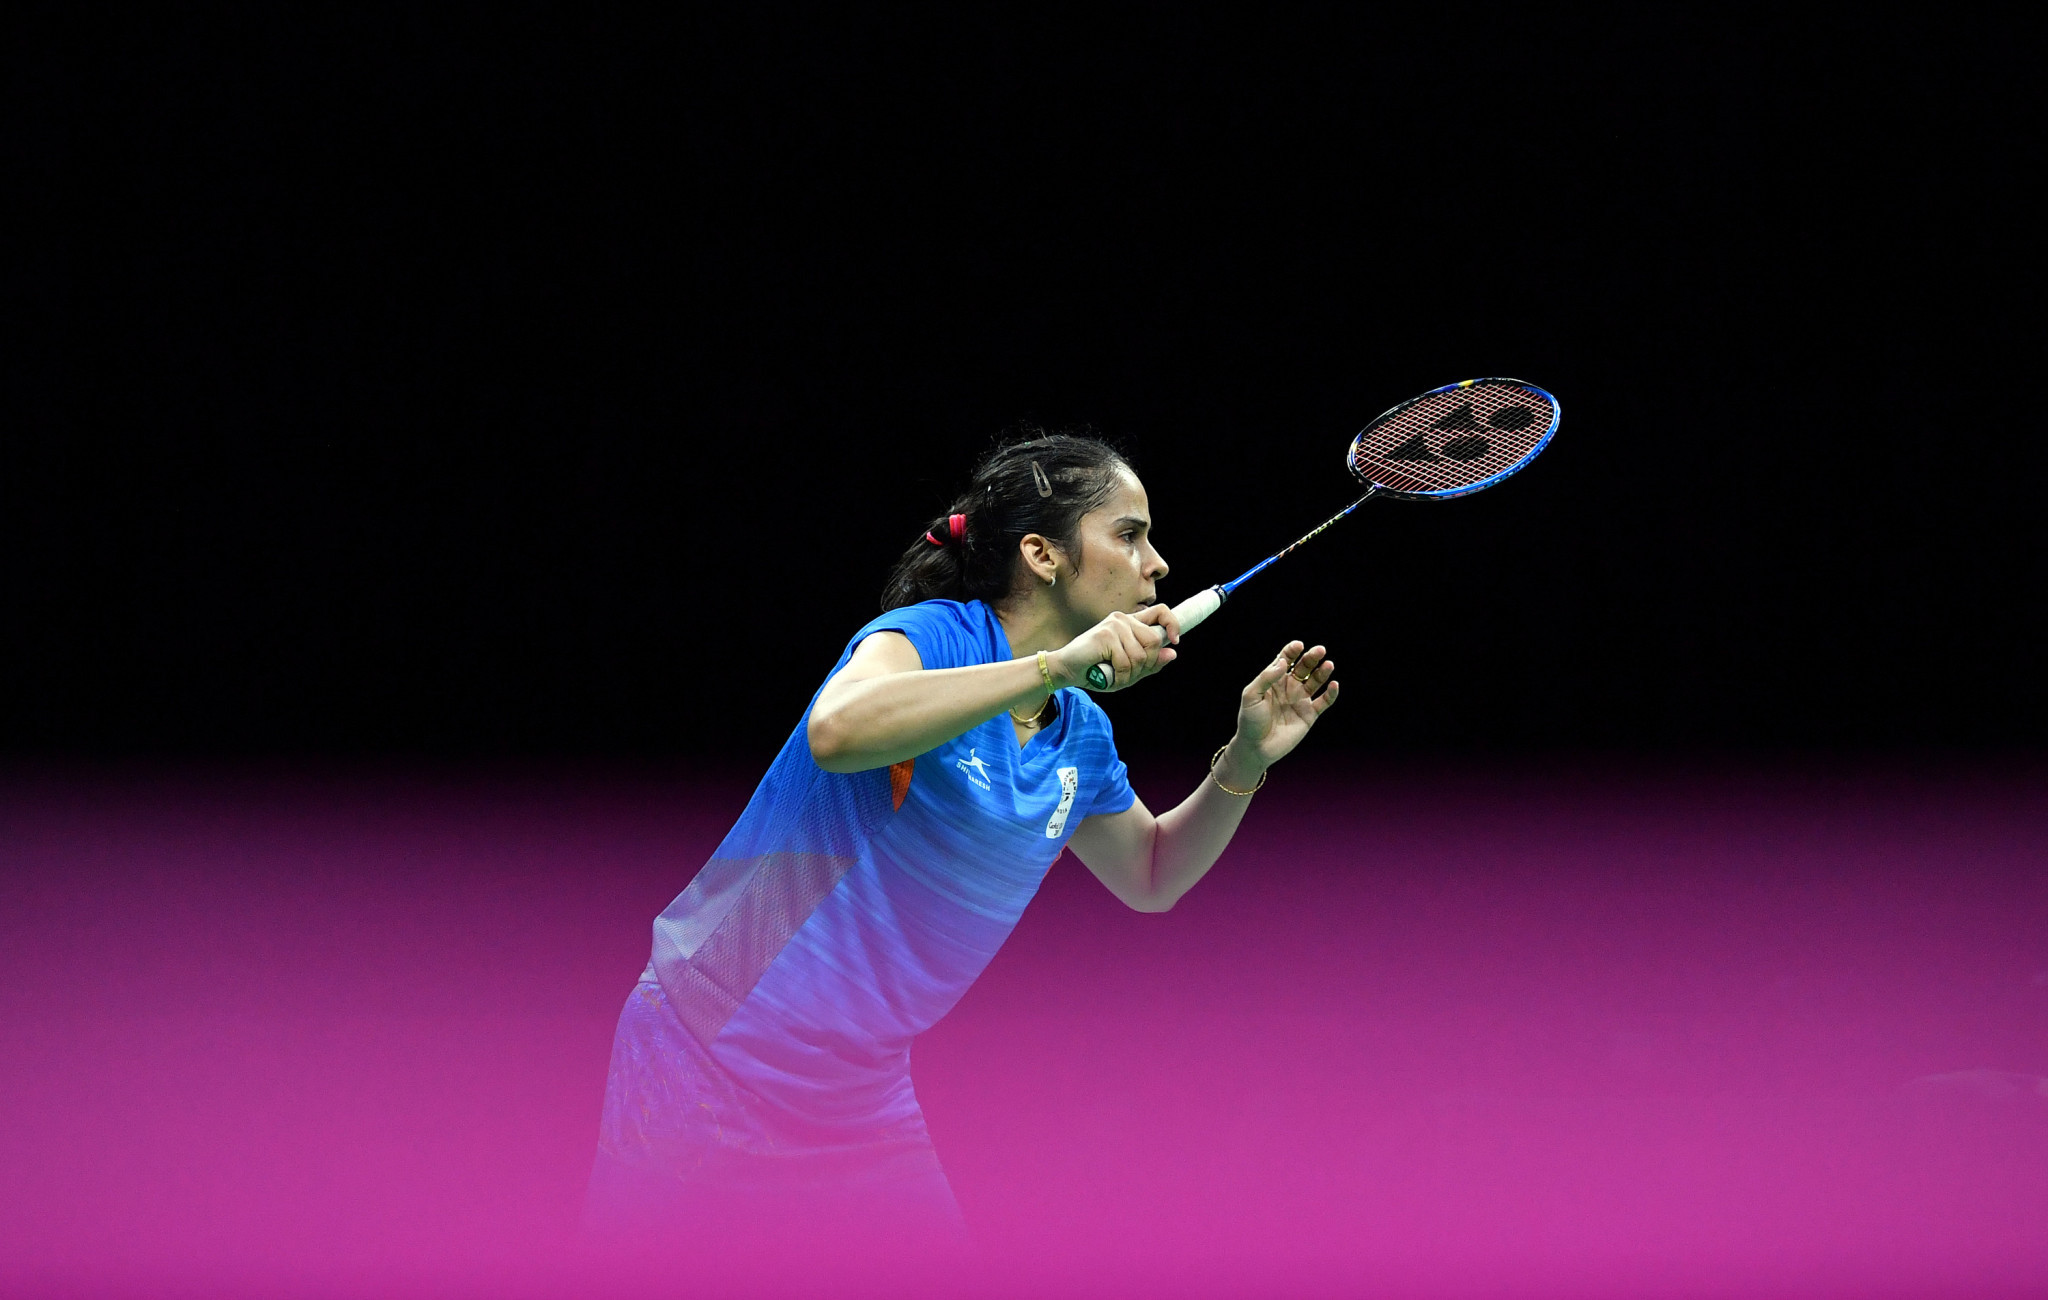 Saina Nehwal has won three Commonwealth Games gold medals, as well as an Olympic bronze ©Getty Images